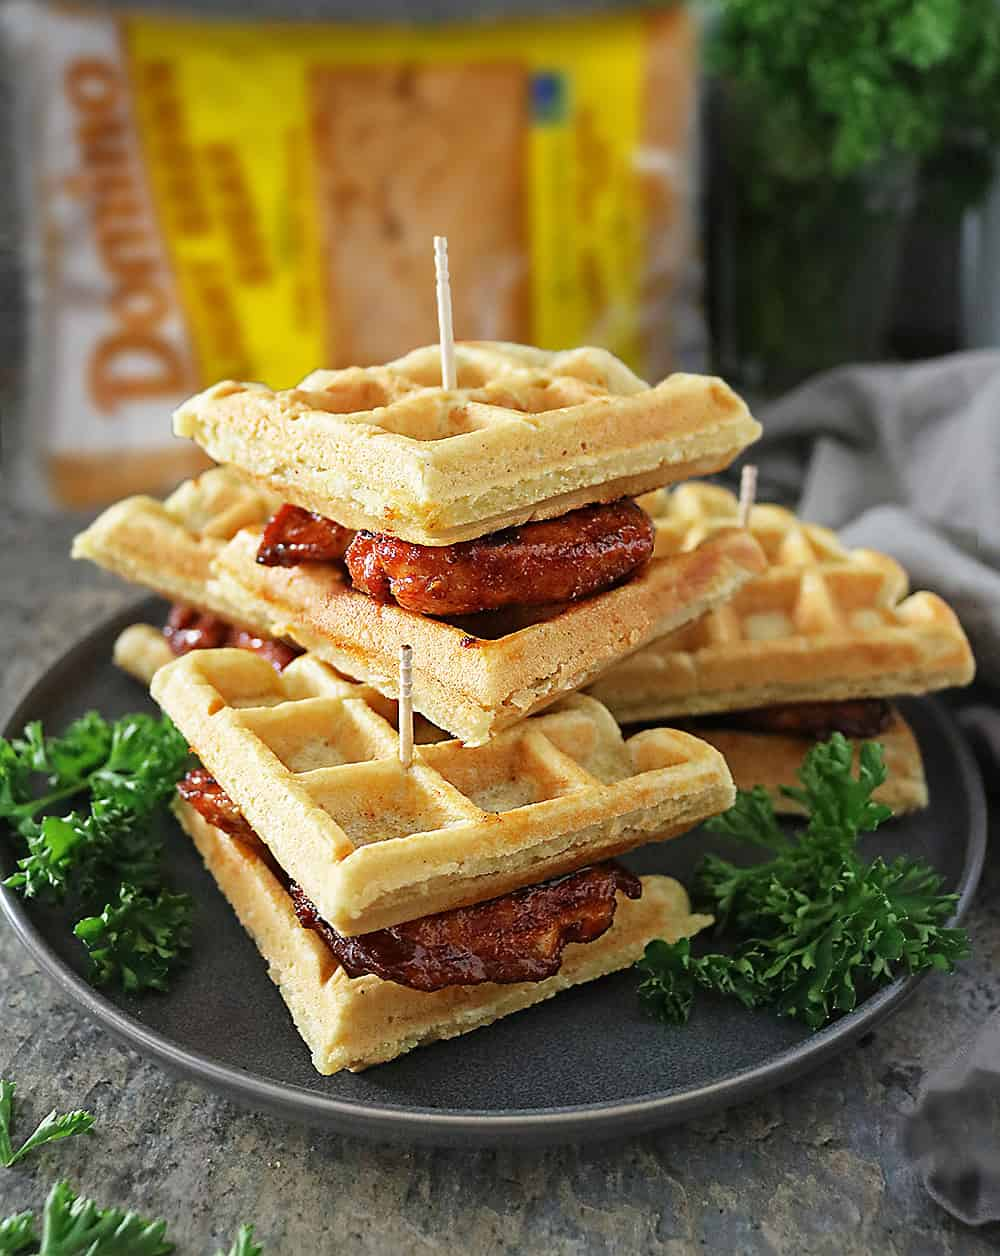 These Chicken and Waffle Sliders are easy to handle and oh so easy to enjoy!